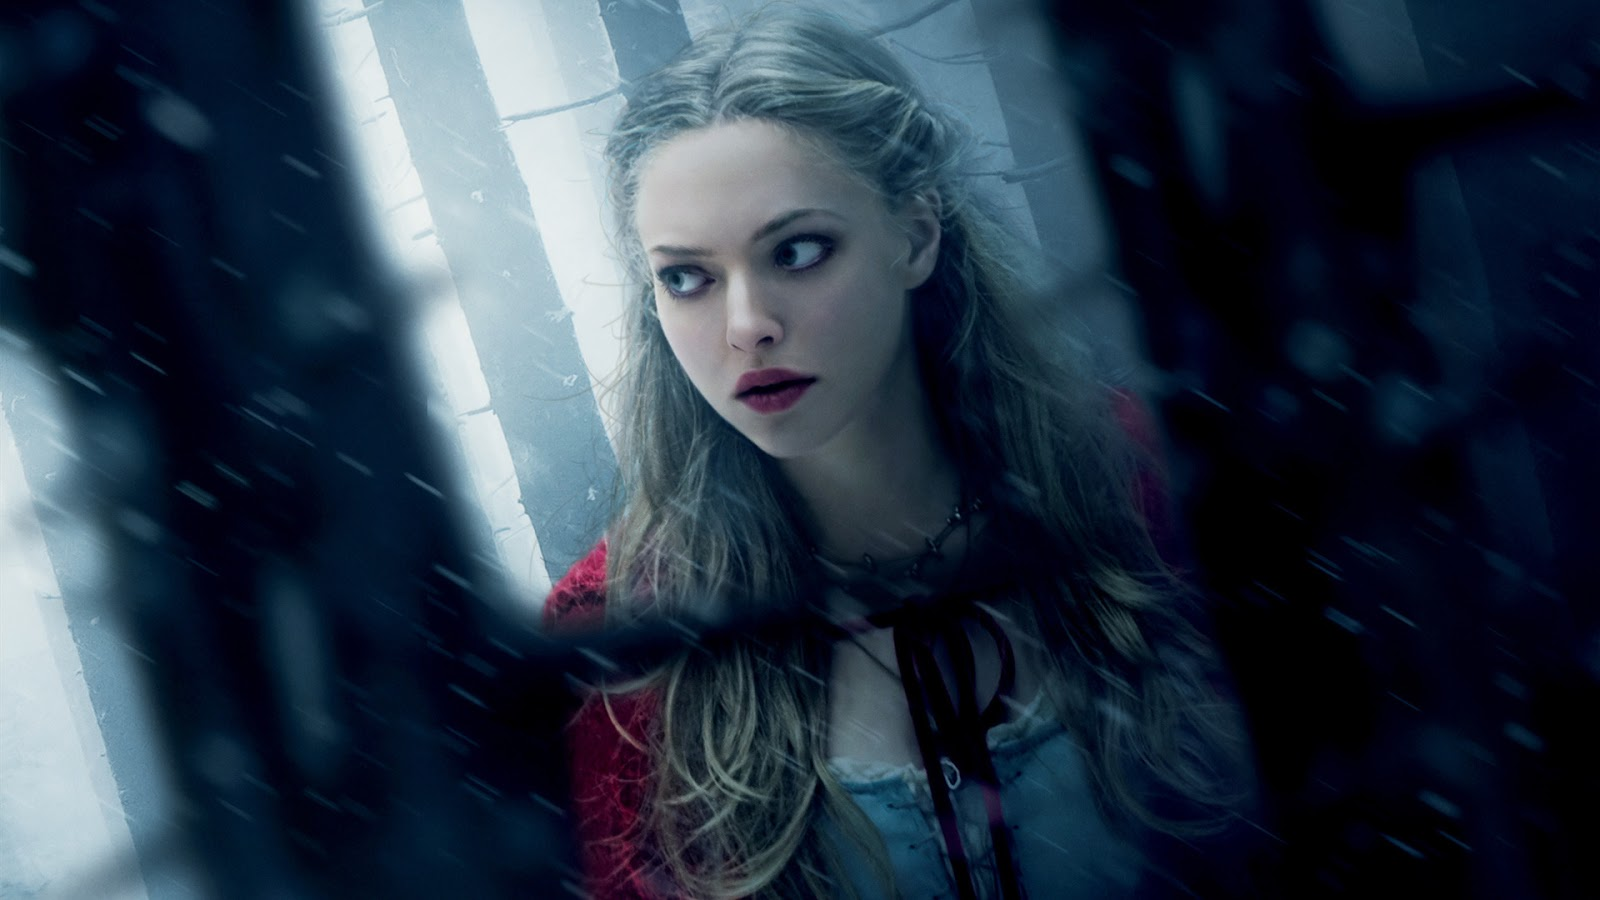 dreamology amanda seyfried hd - photo #10